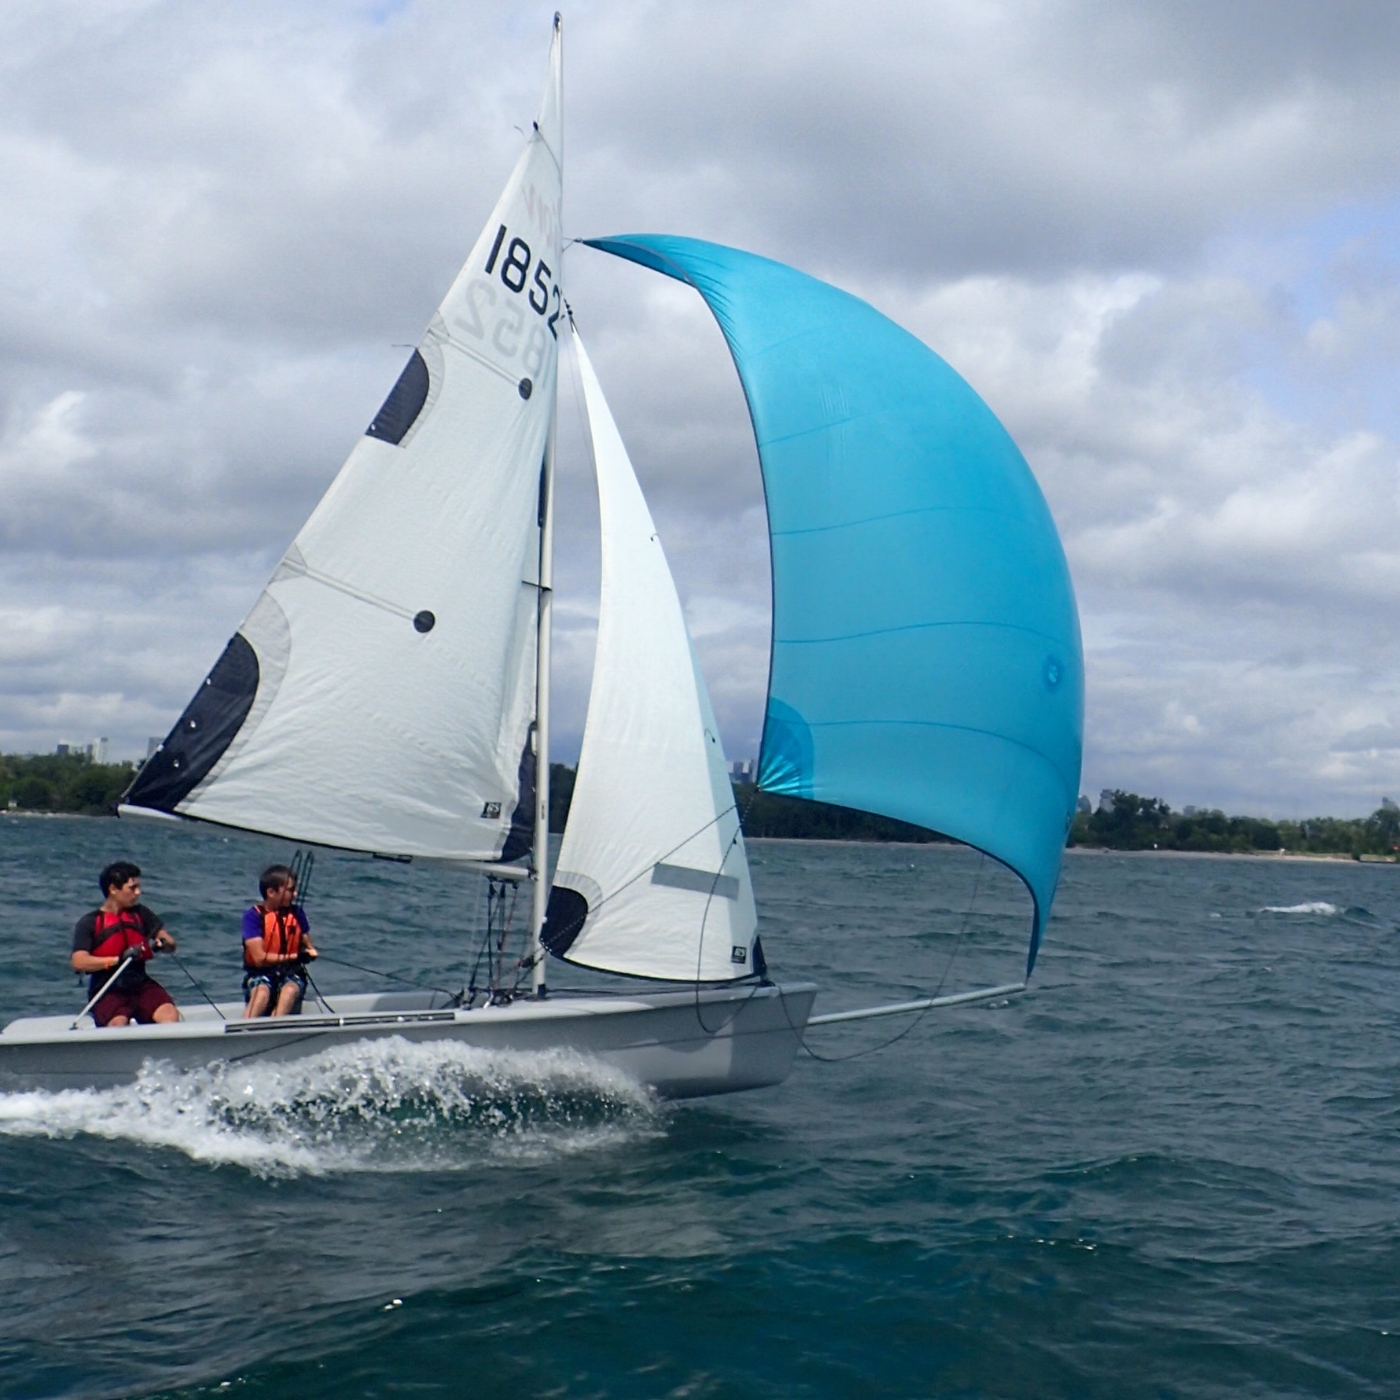 Sailing Fanatics - learn to sail sailing camp in Toronto for under 18 young junior sailors